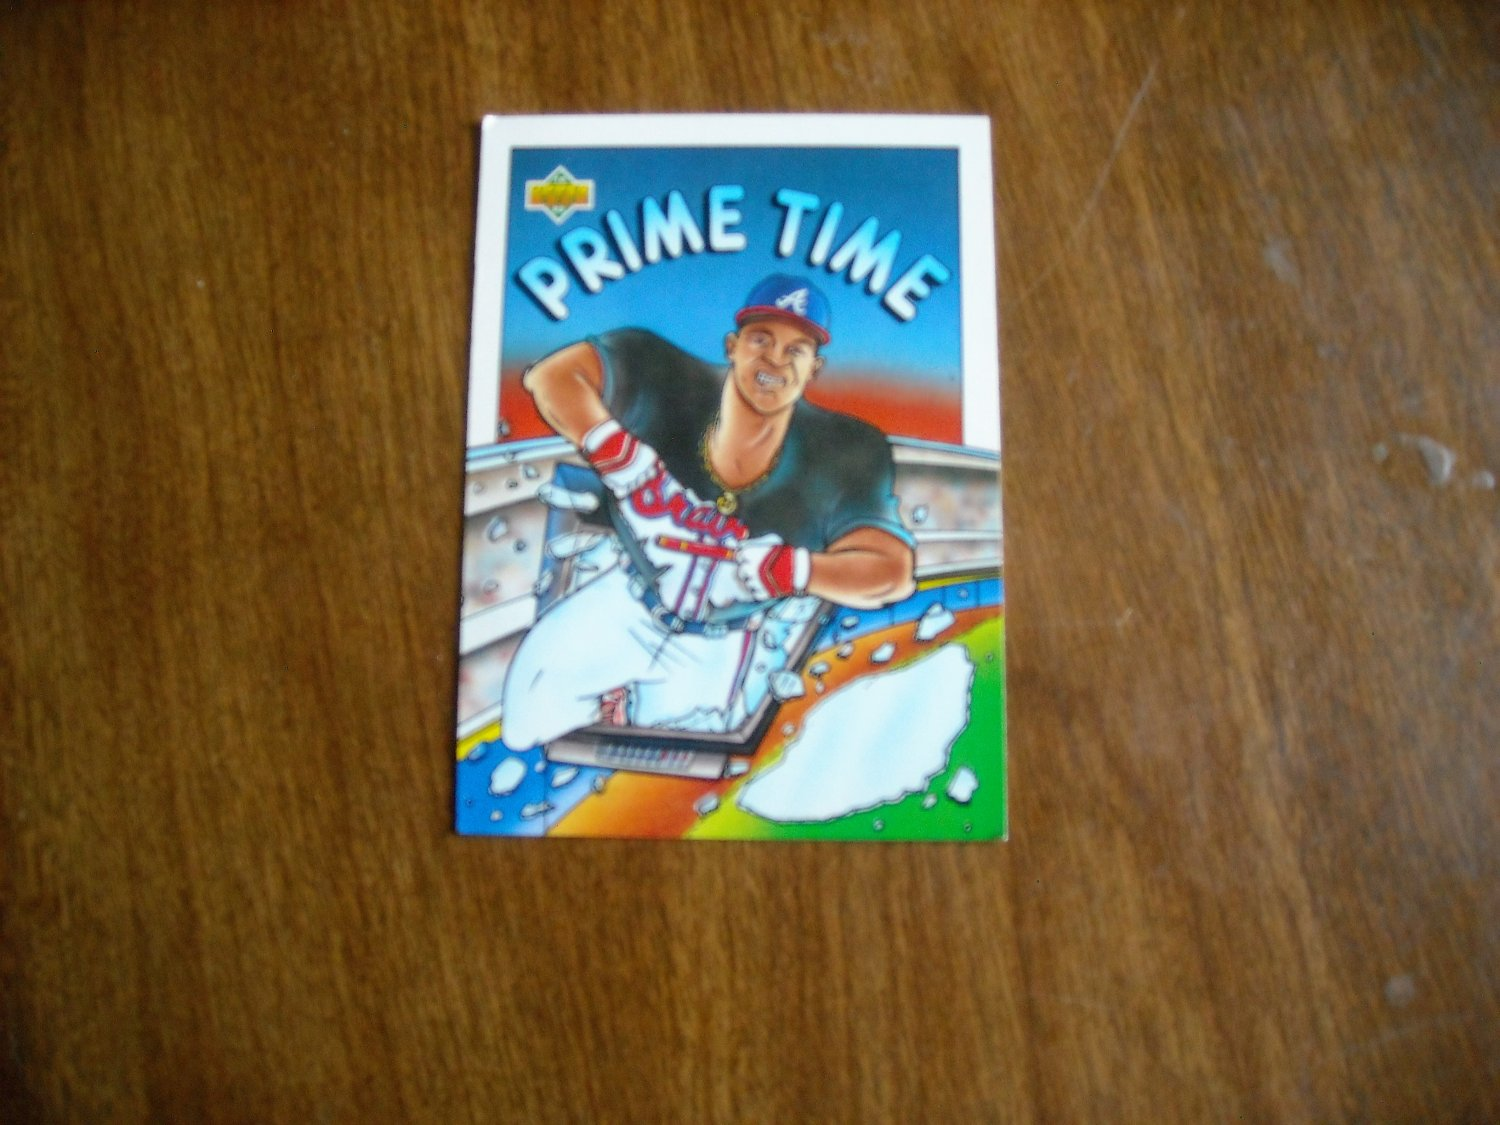 Deion Sanders Atlanta Braves Outfield Card No. 34 - Prime Time 1993 Upper Deck Baseball Card